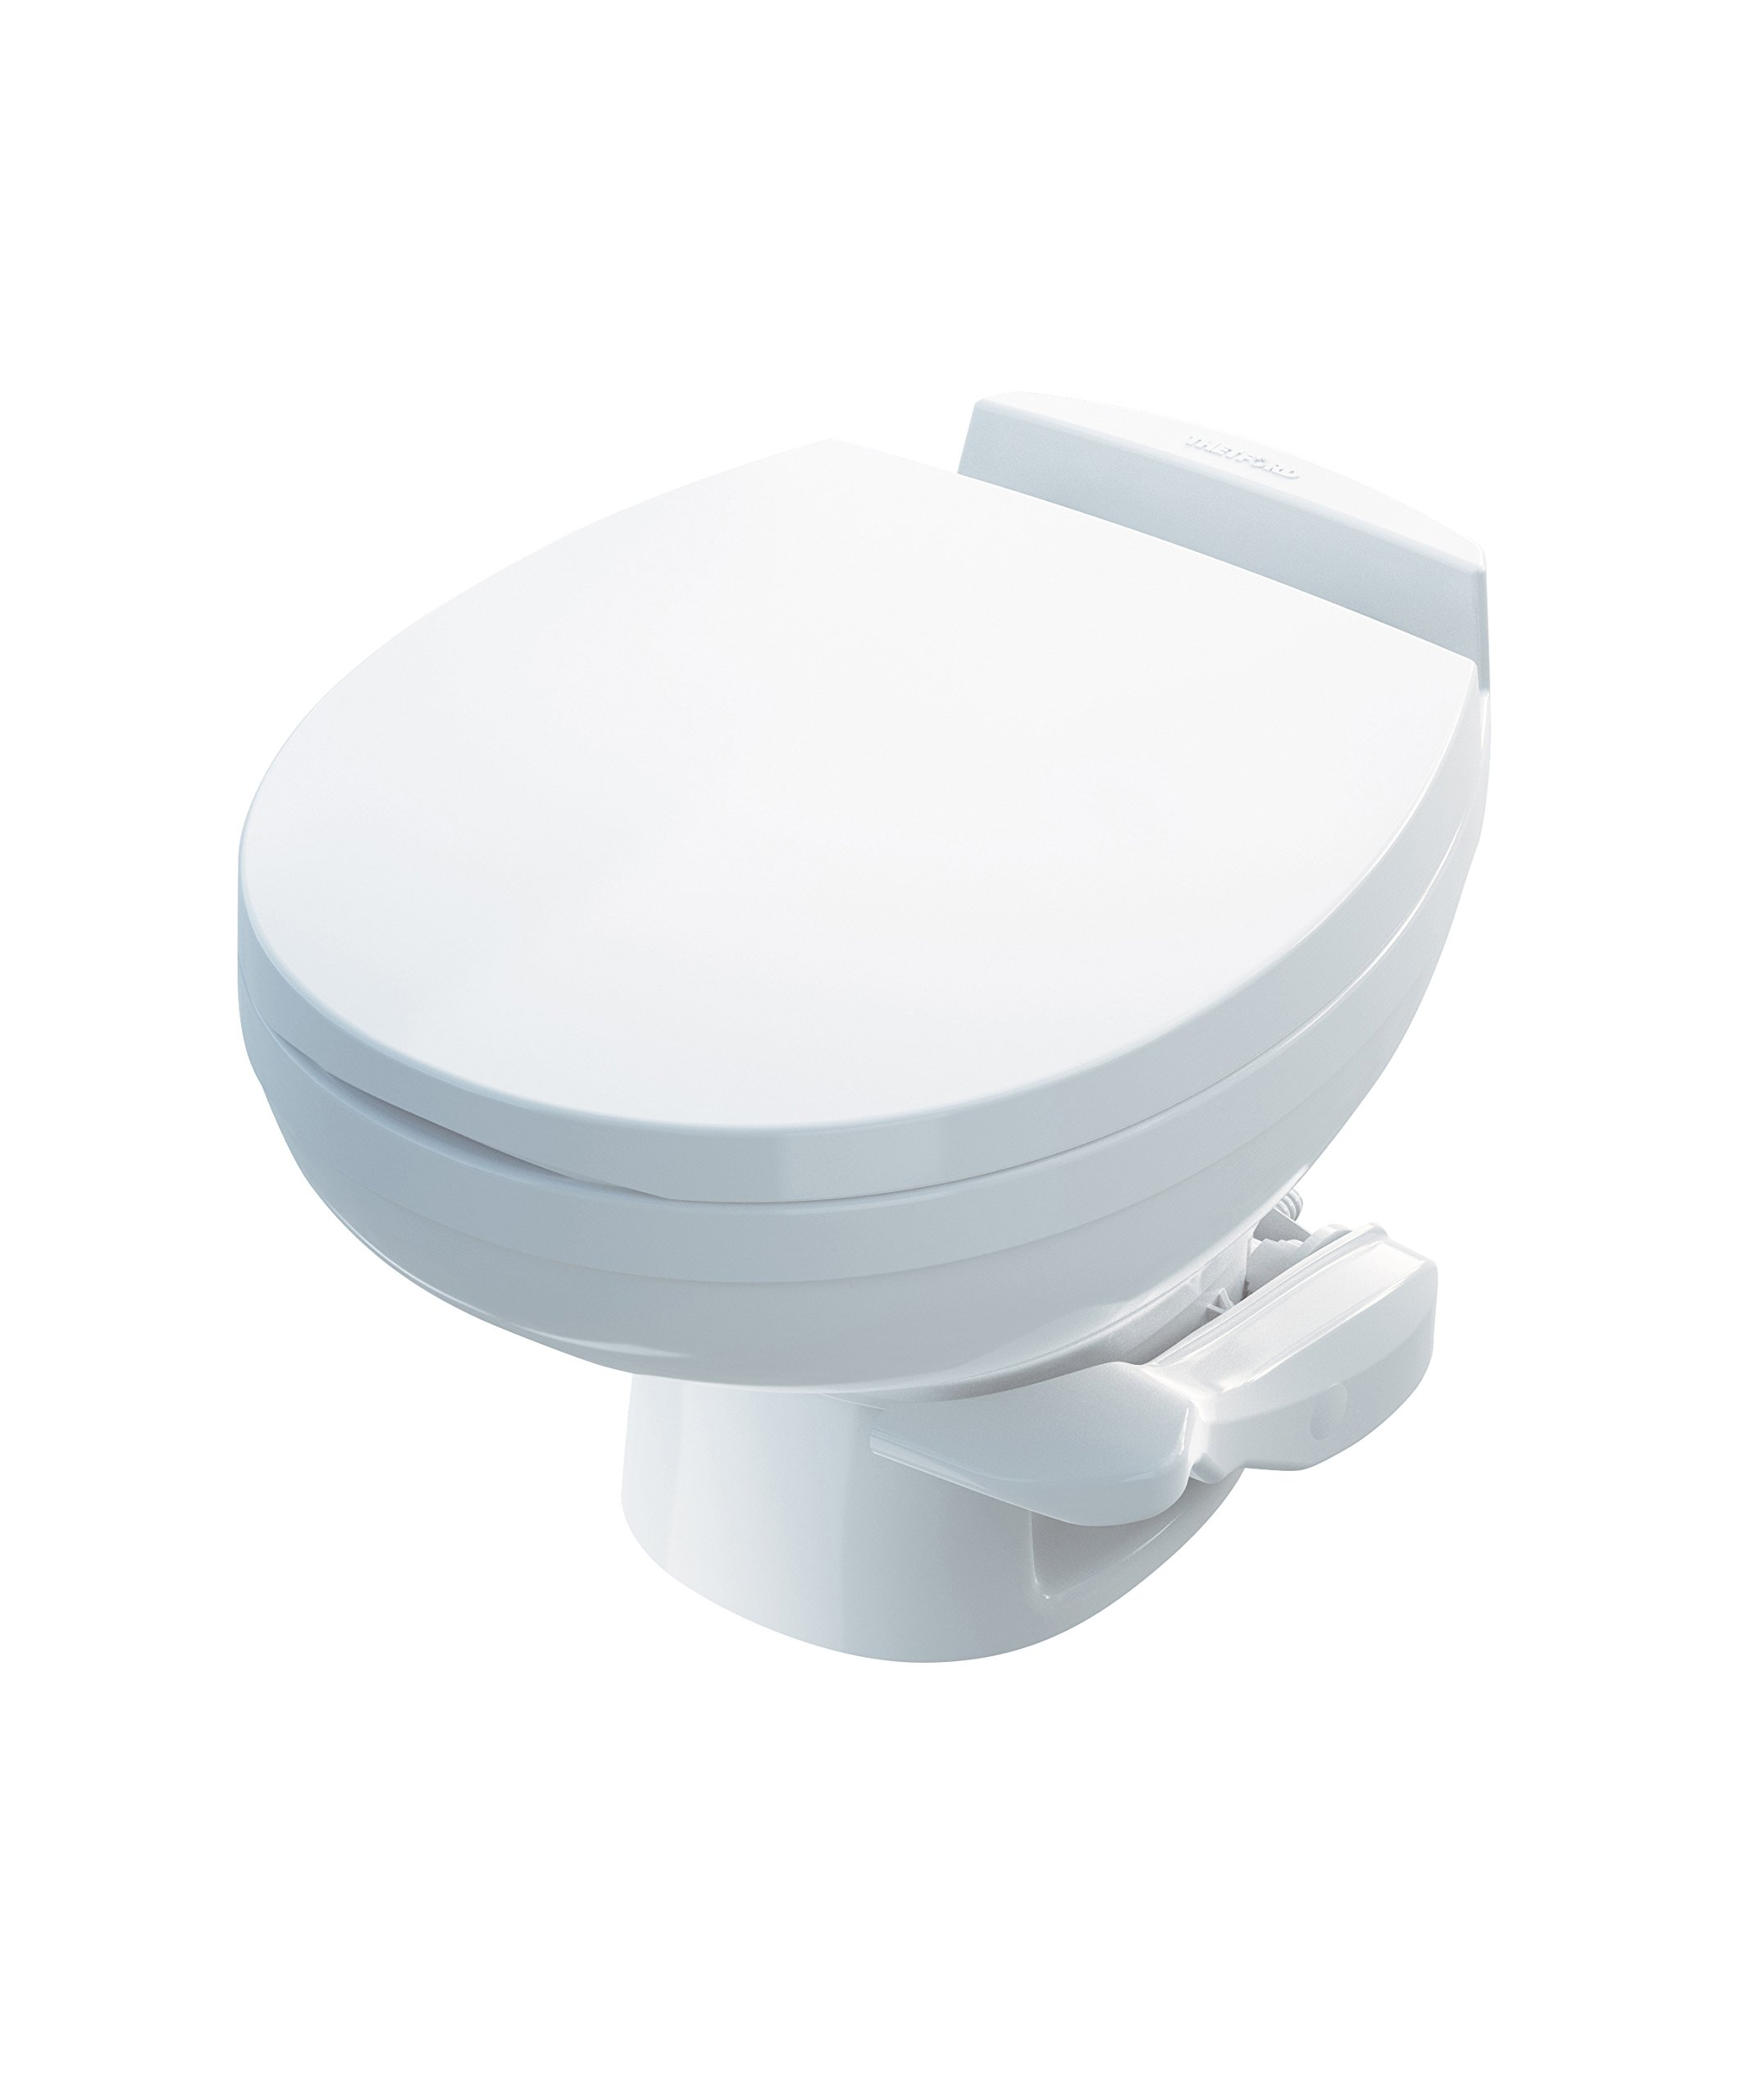 Thetford Aqua Magic Residence RV Toilet-Low Profile-White Color 42170 by Thetford